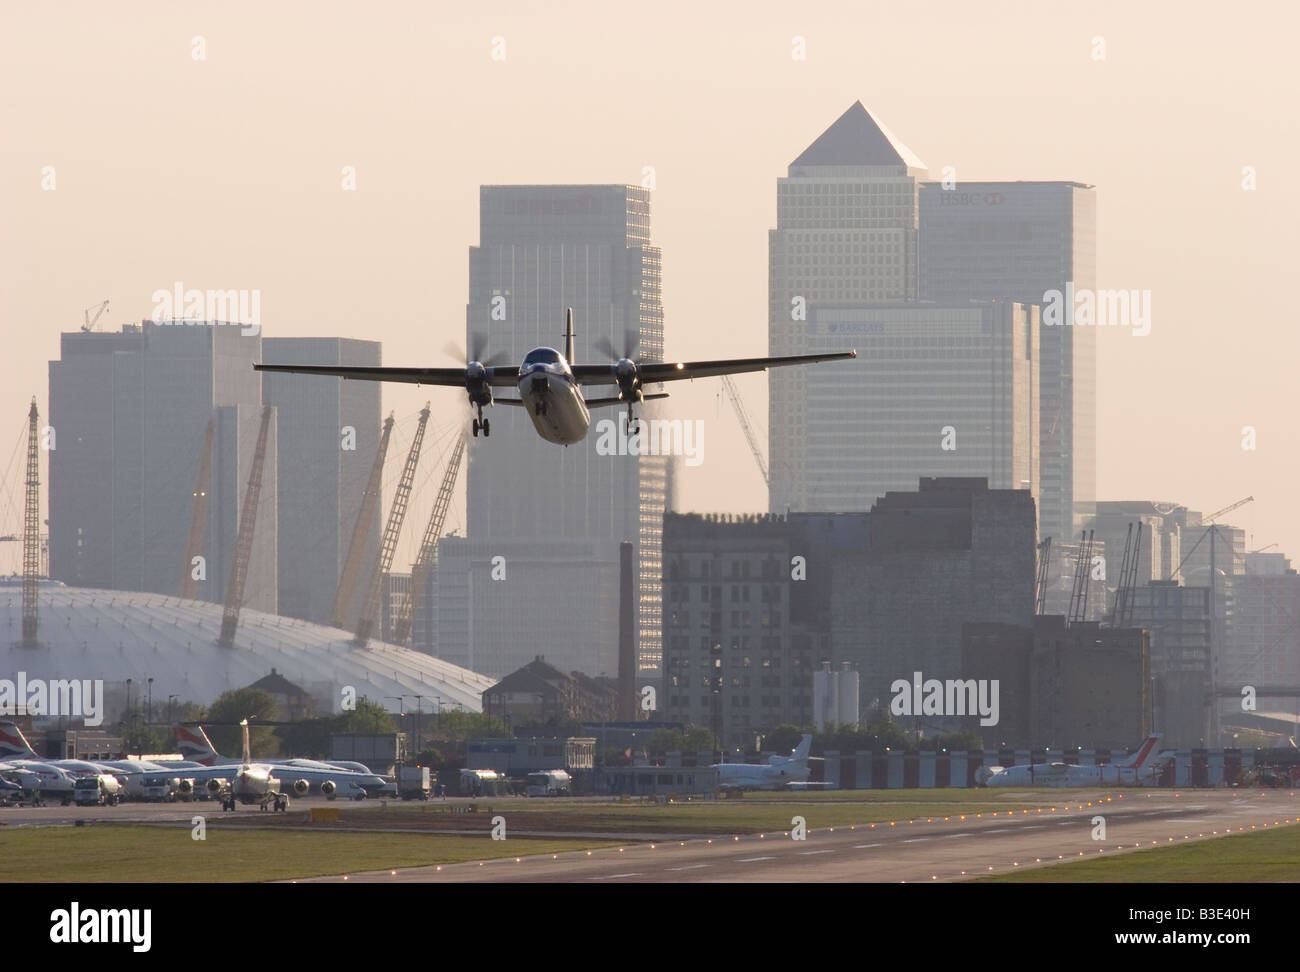 VLM Airlines Fokker 50 F 27 050 taking off from London City Airport - Stock Image